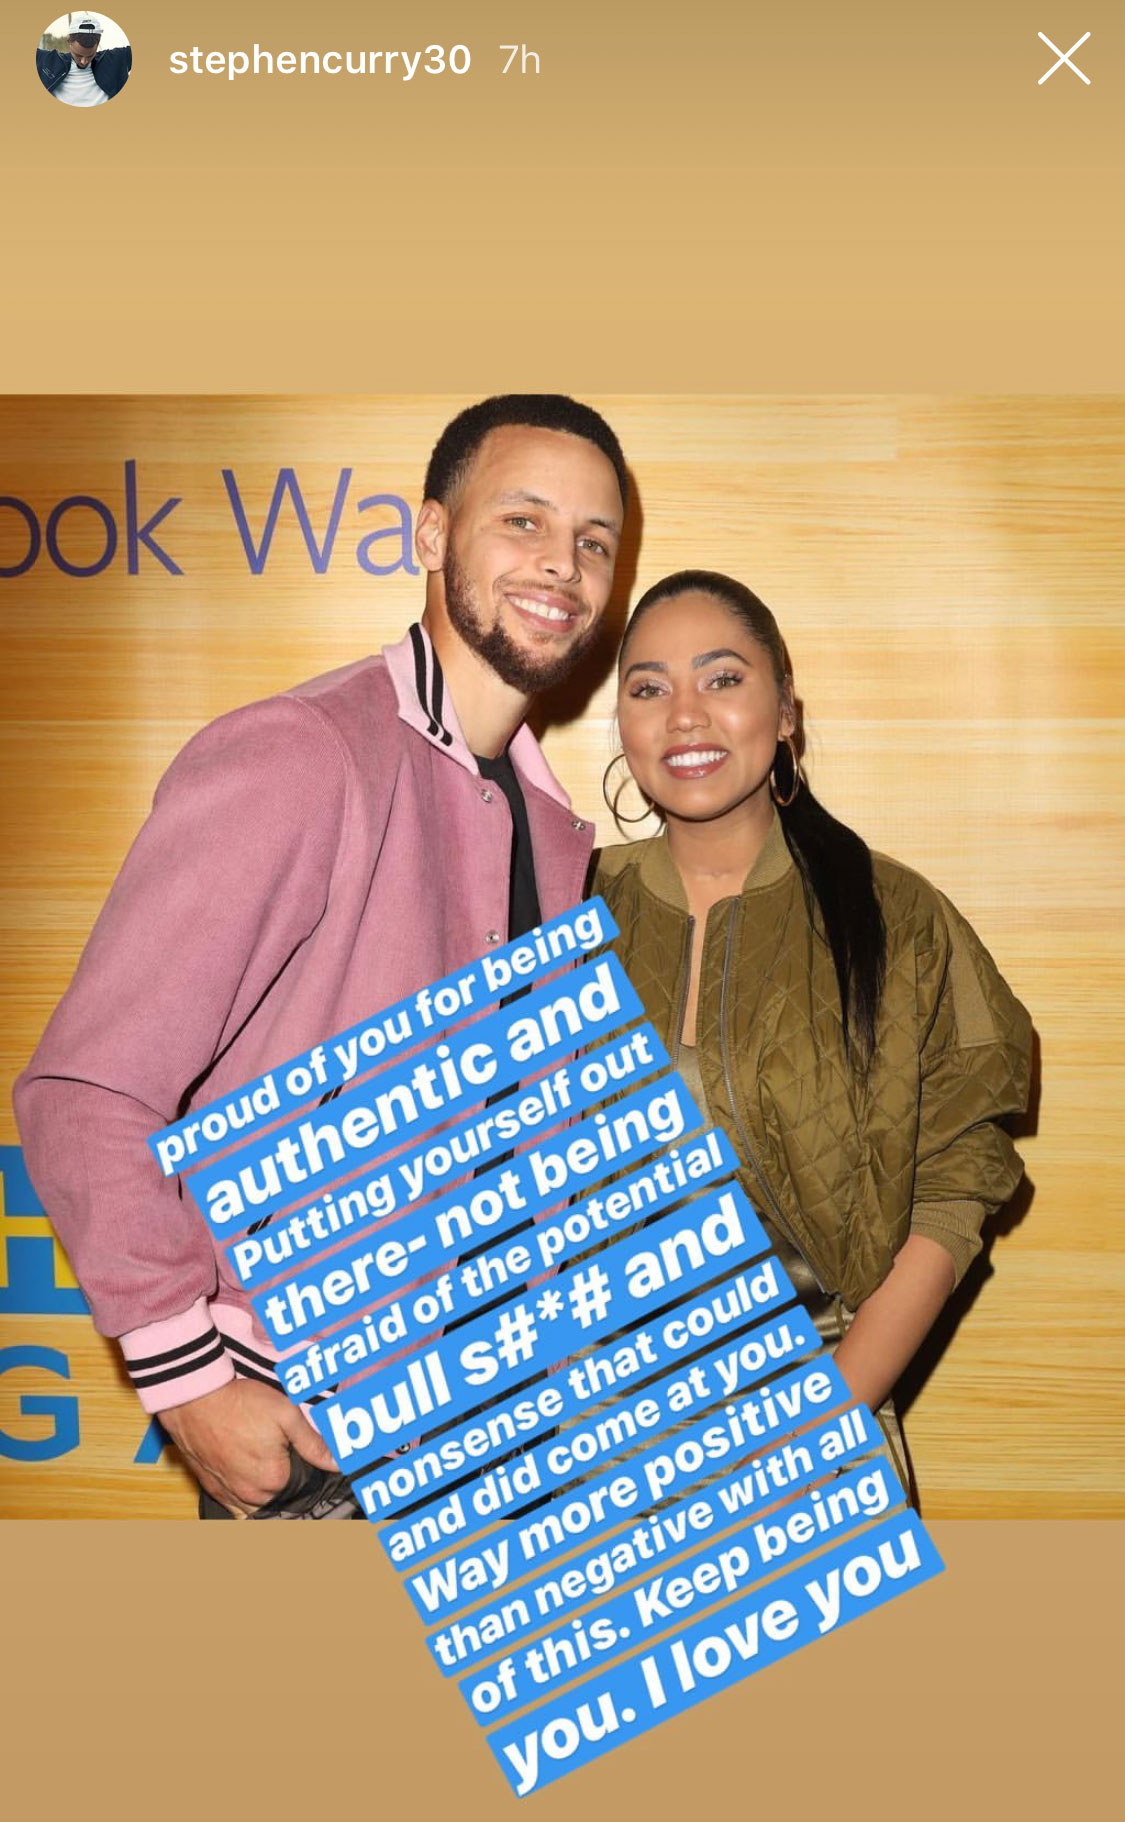 steph curry supports his wife ayesha after backlash for